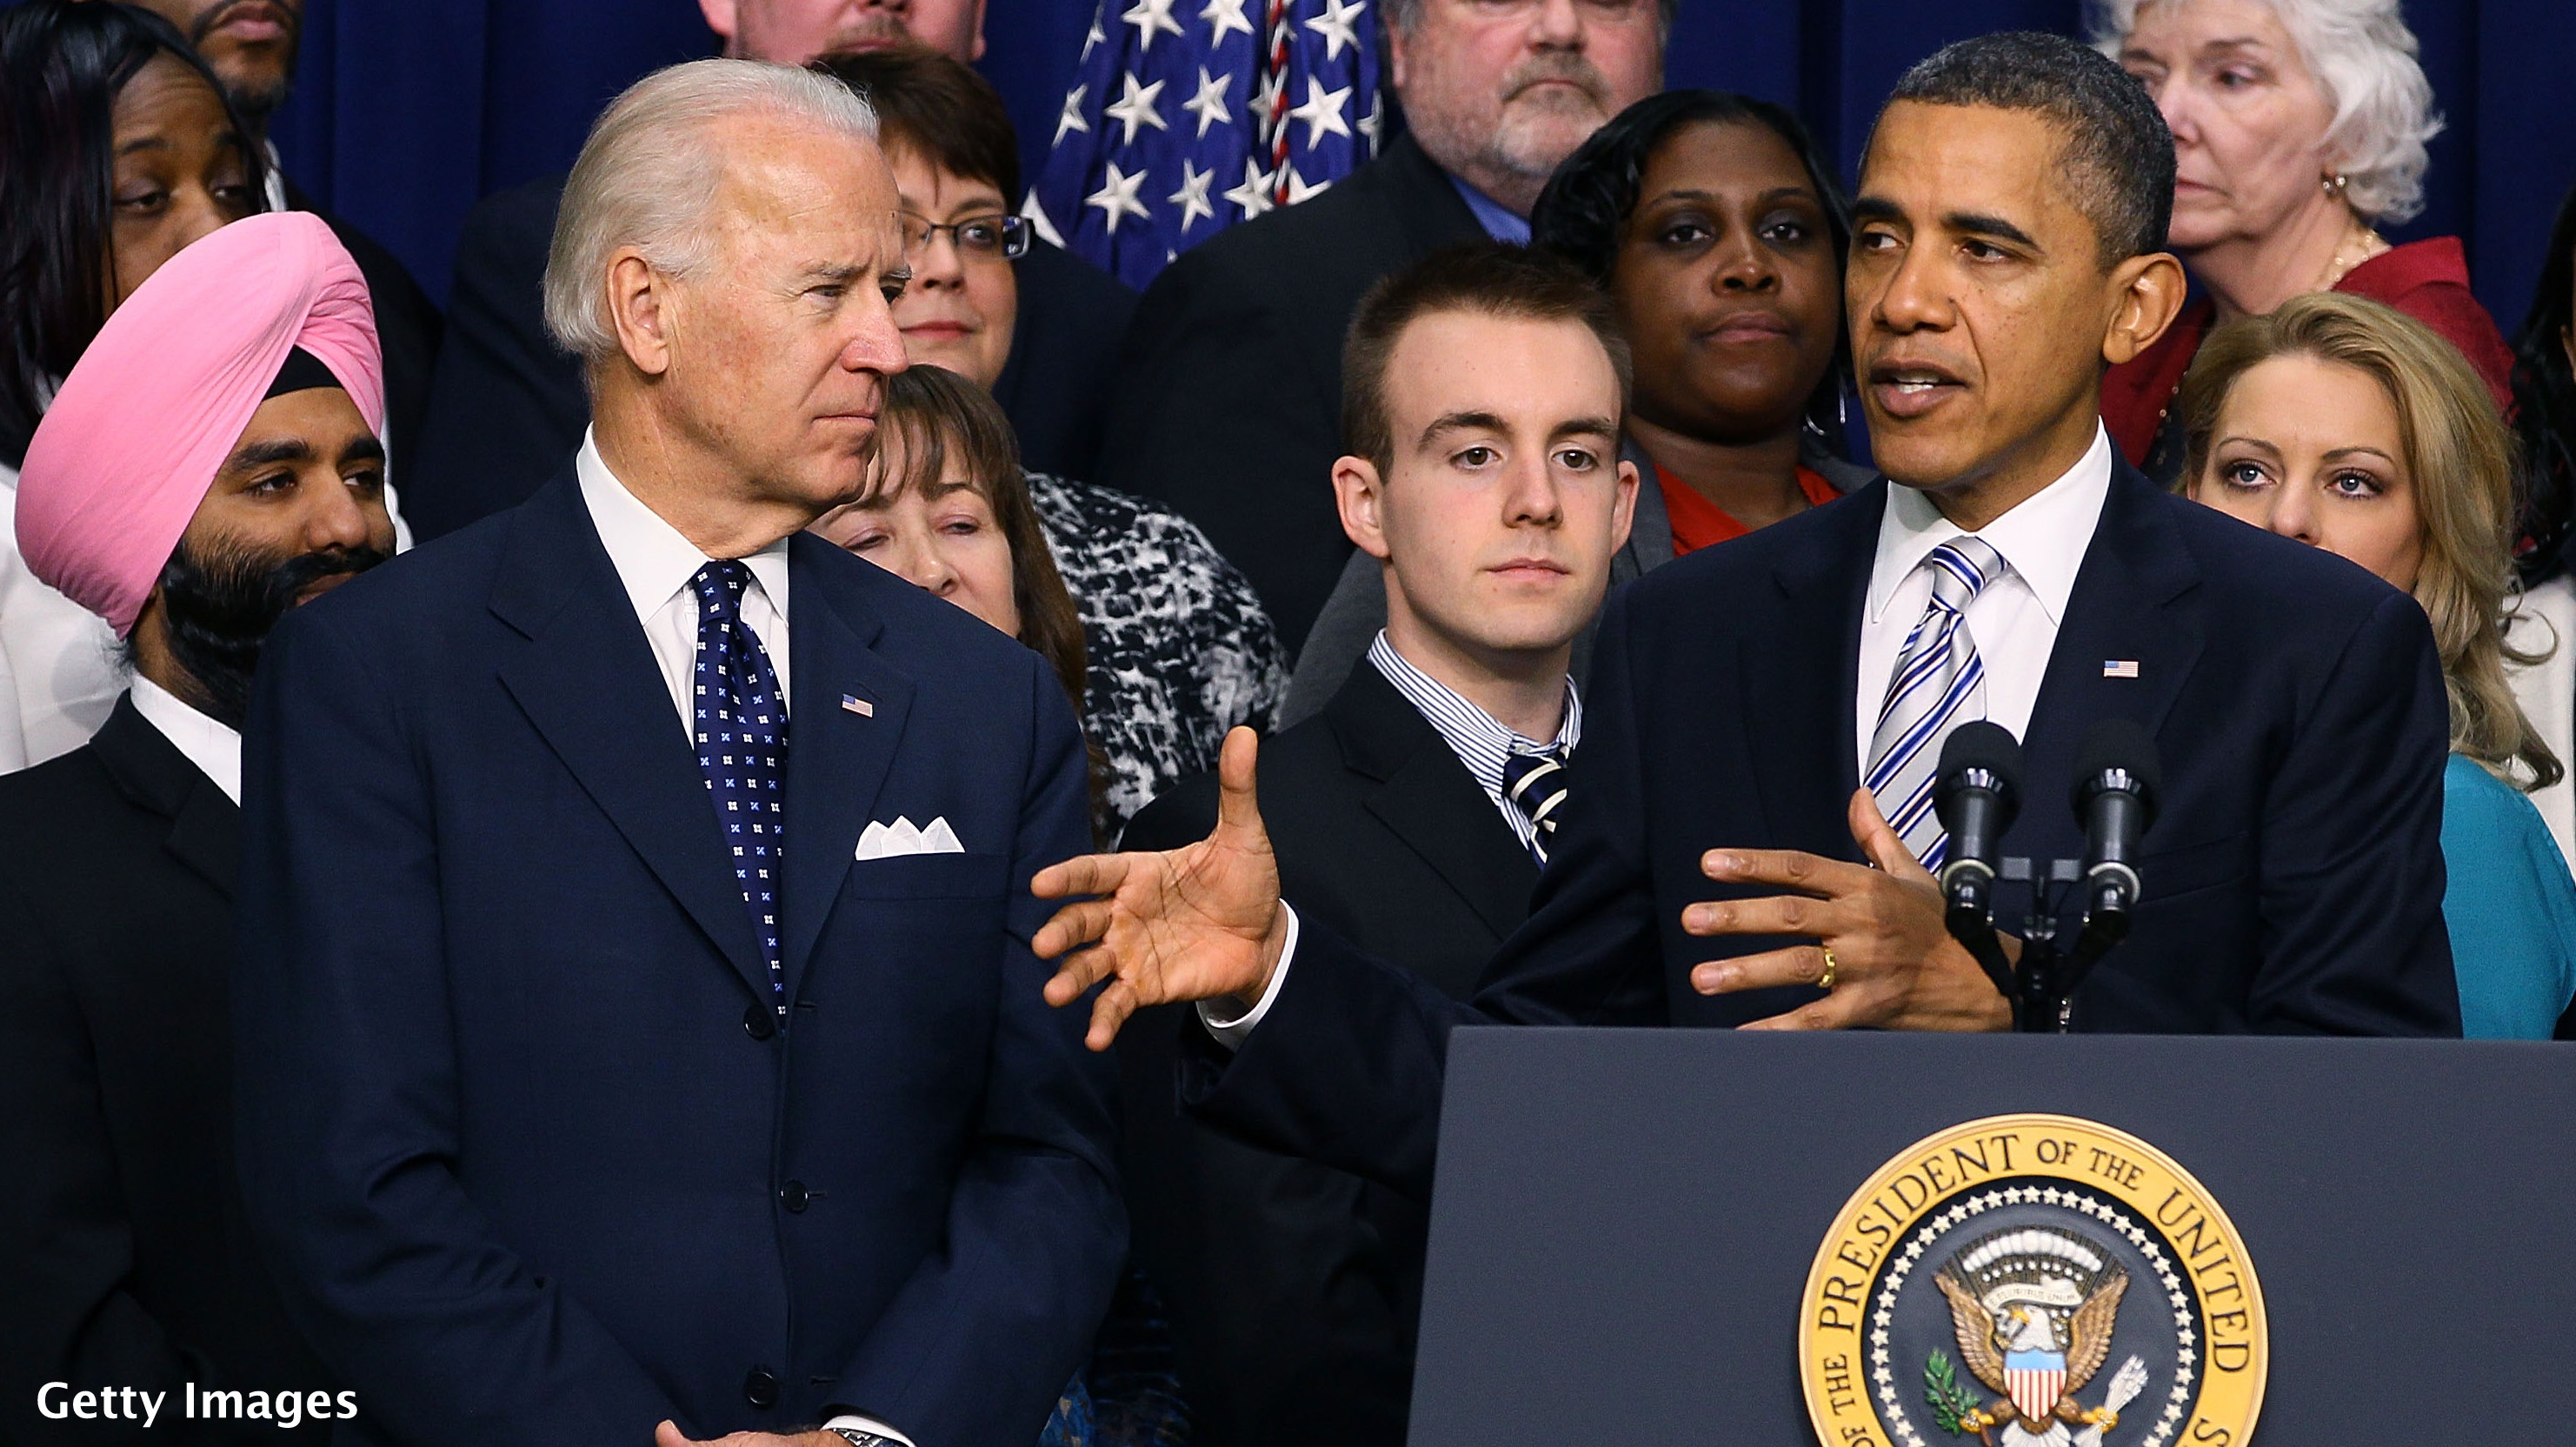 Obama and Biden sharpen attacks over economy